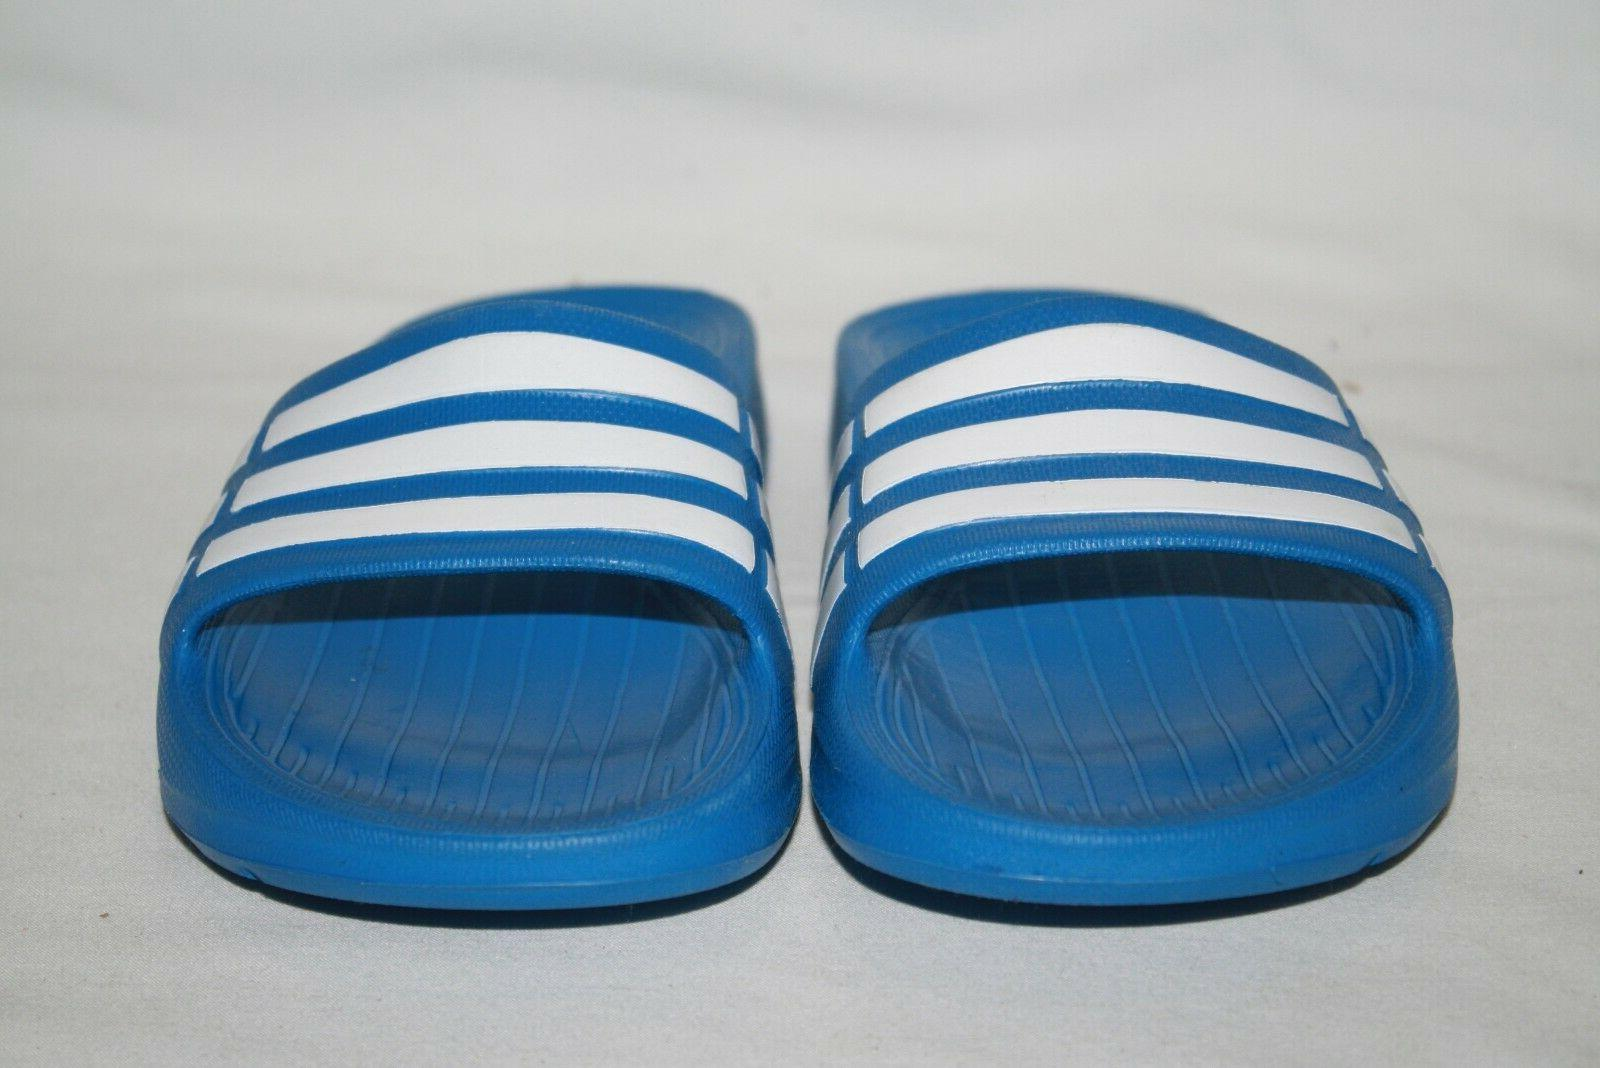 BOYS DURAMO SLIDE SANDALS - SEE LISTING FOR SIZE AND